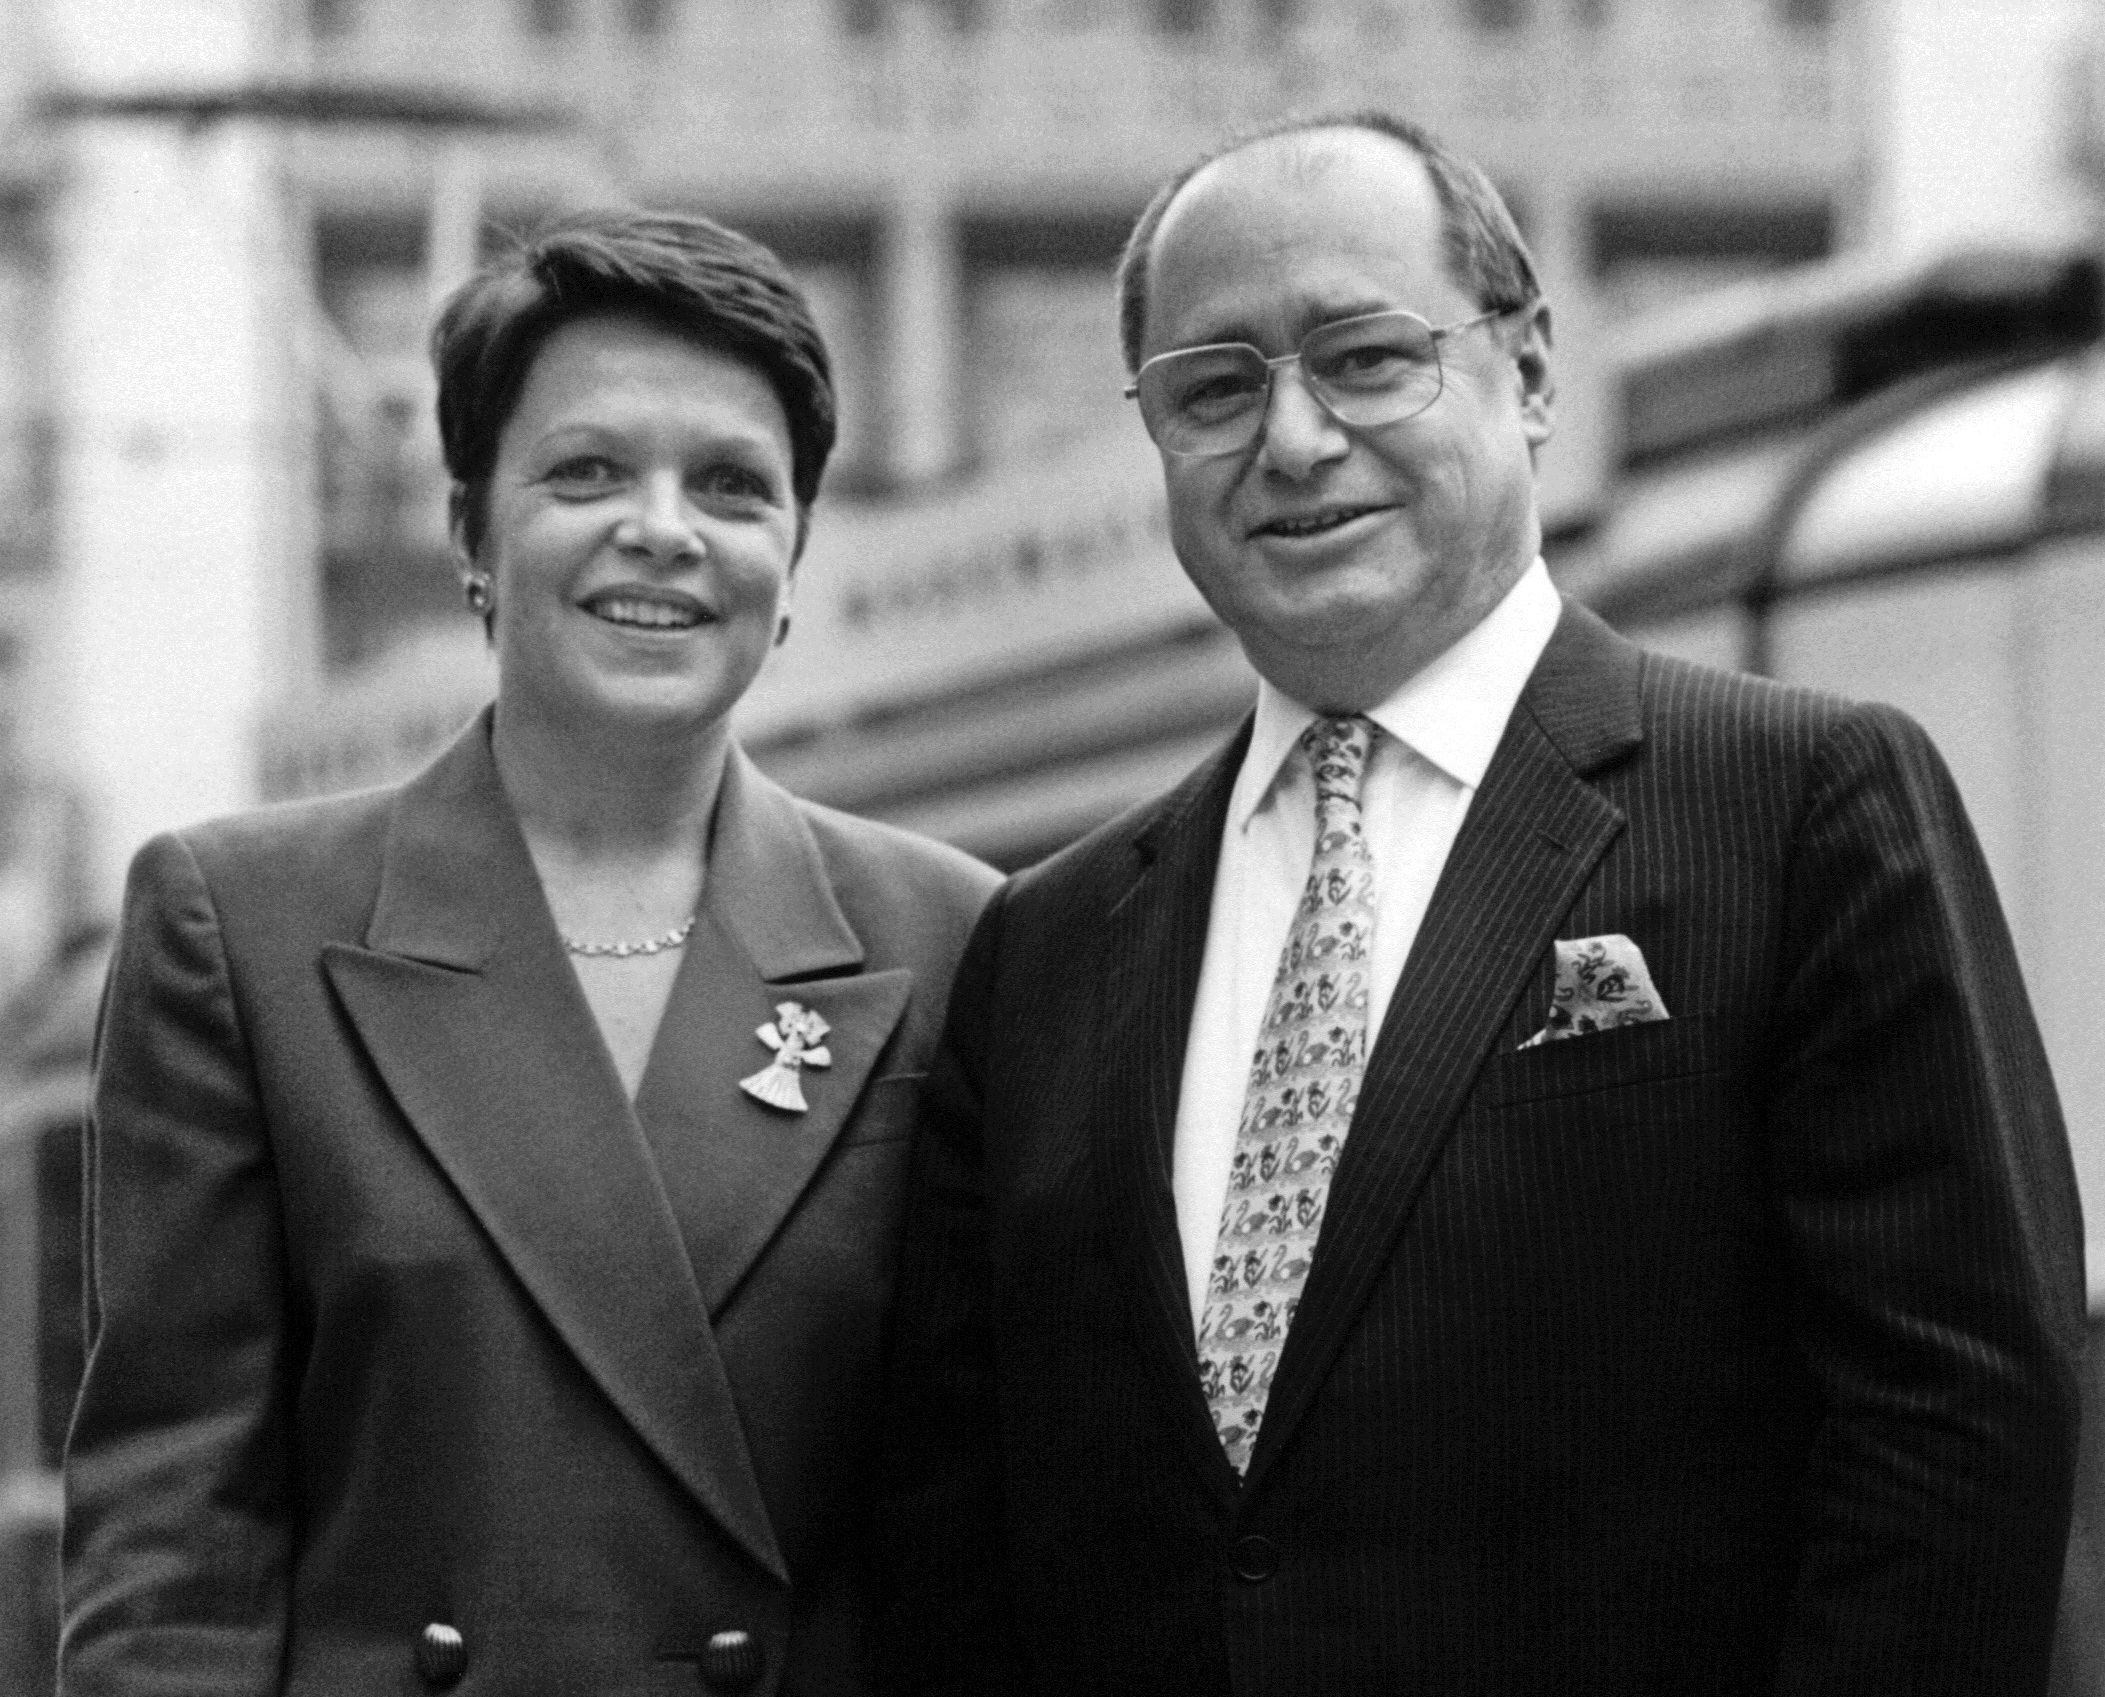 Foto Christina und Manfred Hörger